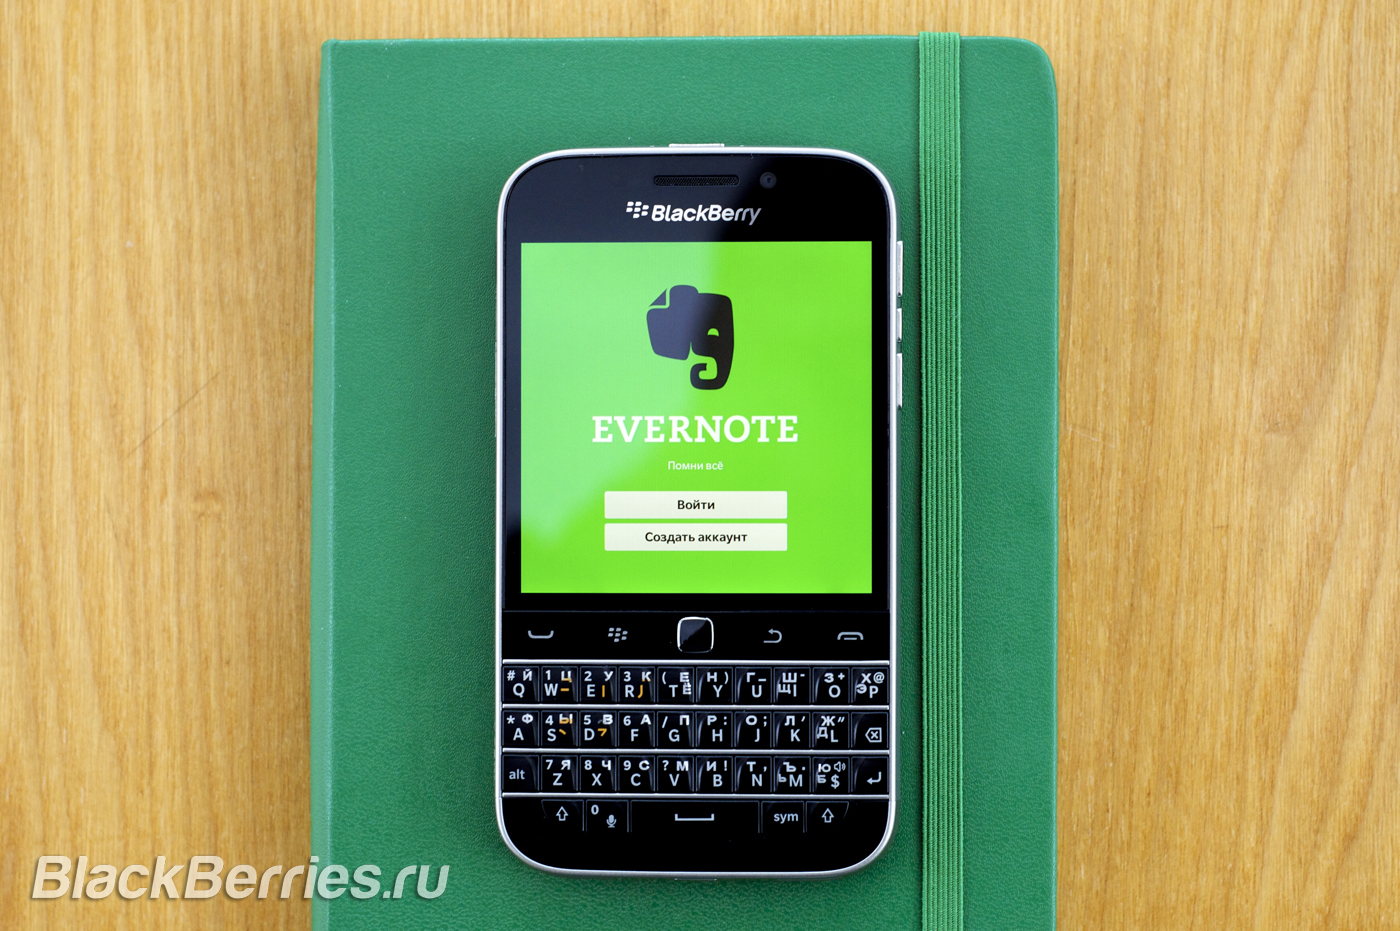 BlackBerry-Classic-Evernote